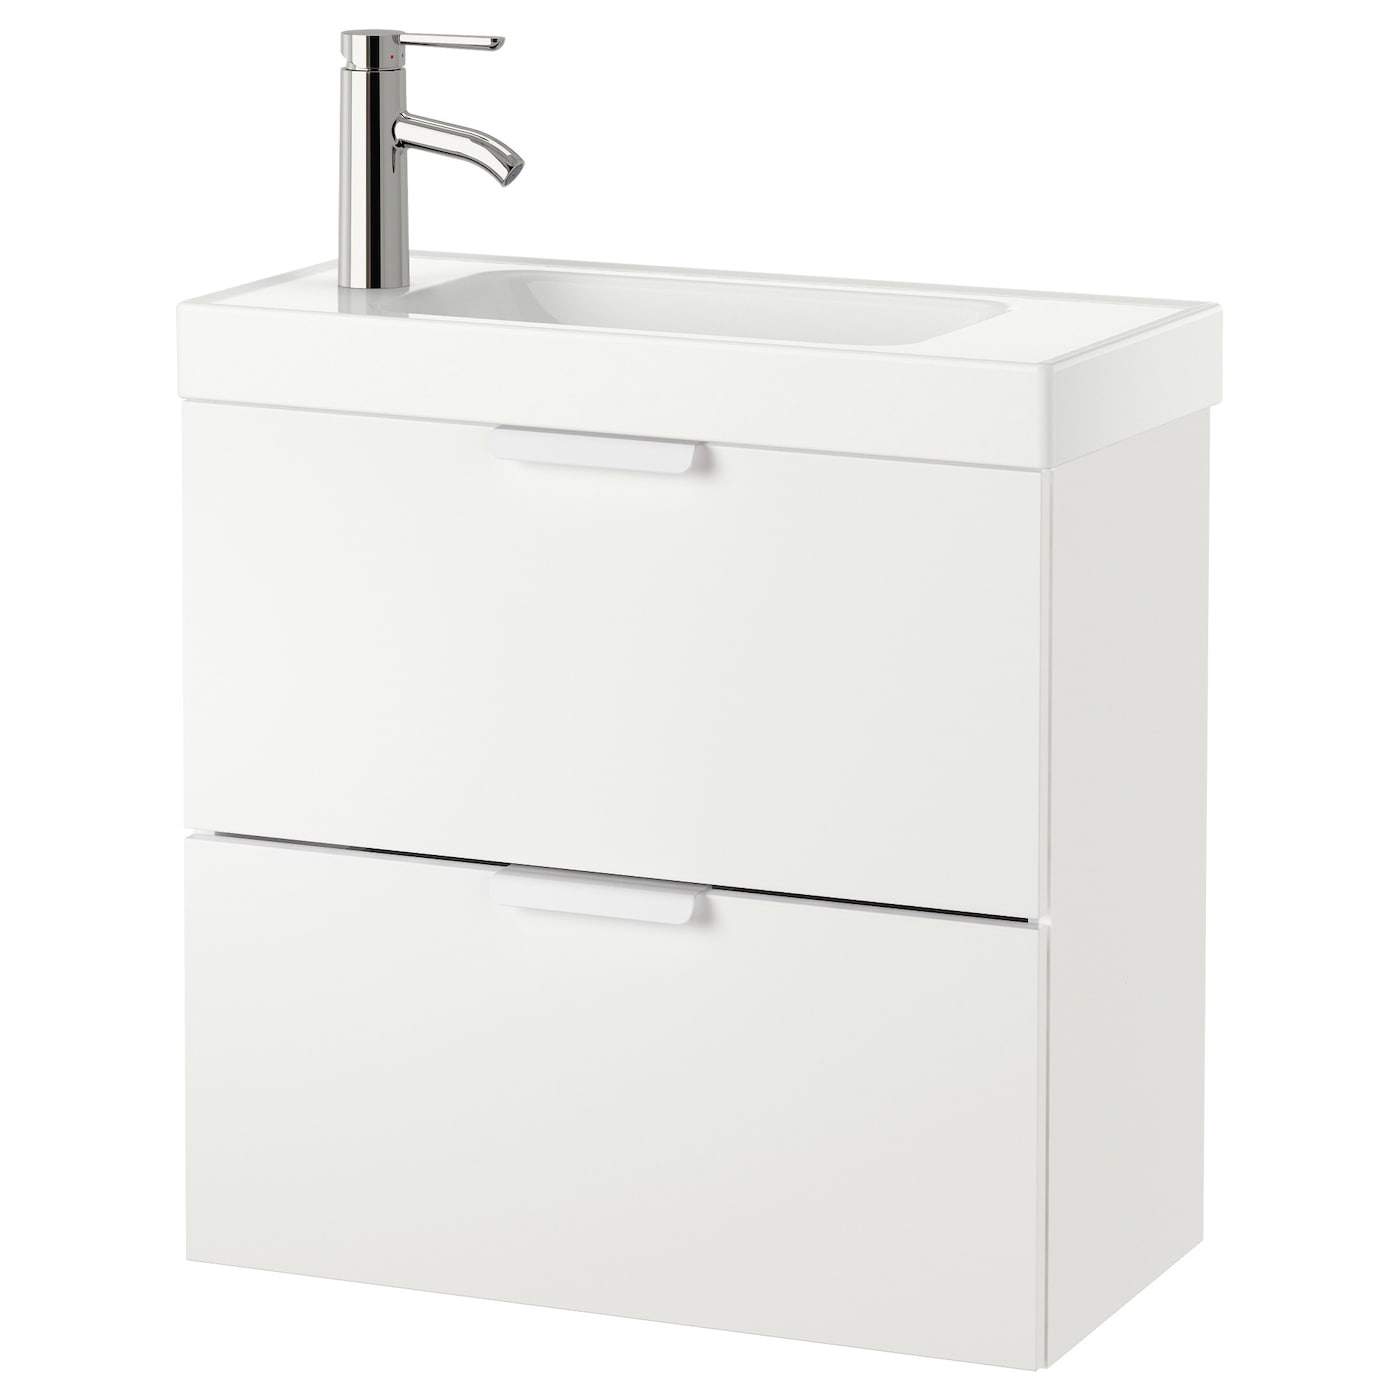 Godmorgon hagaviken wash stand with 2 drawers white 62 x 34 x 65 cm ikea - Godmorgon ikea mobile alto ...